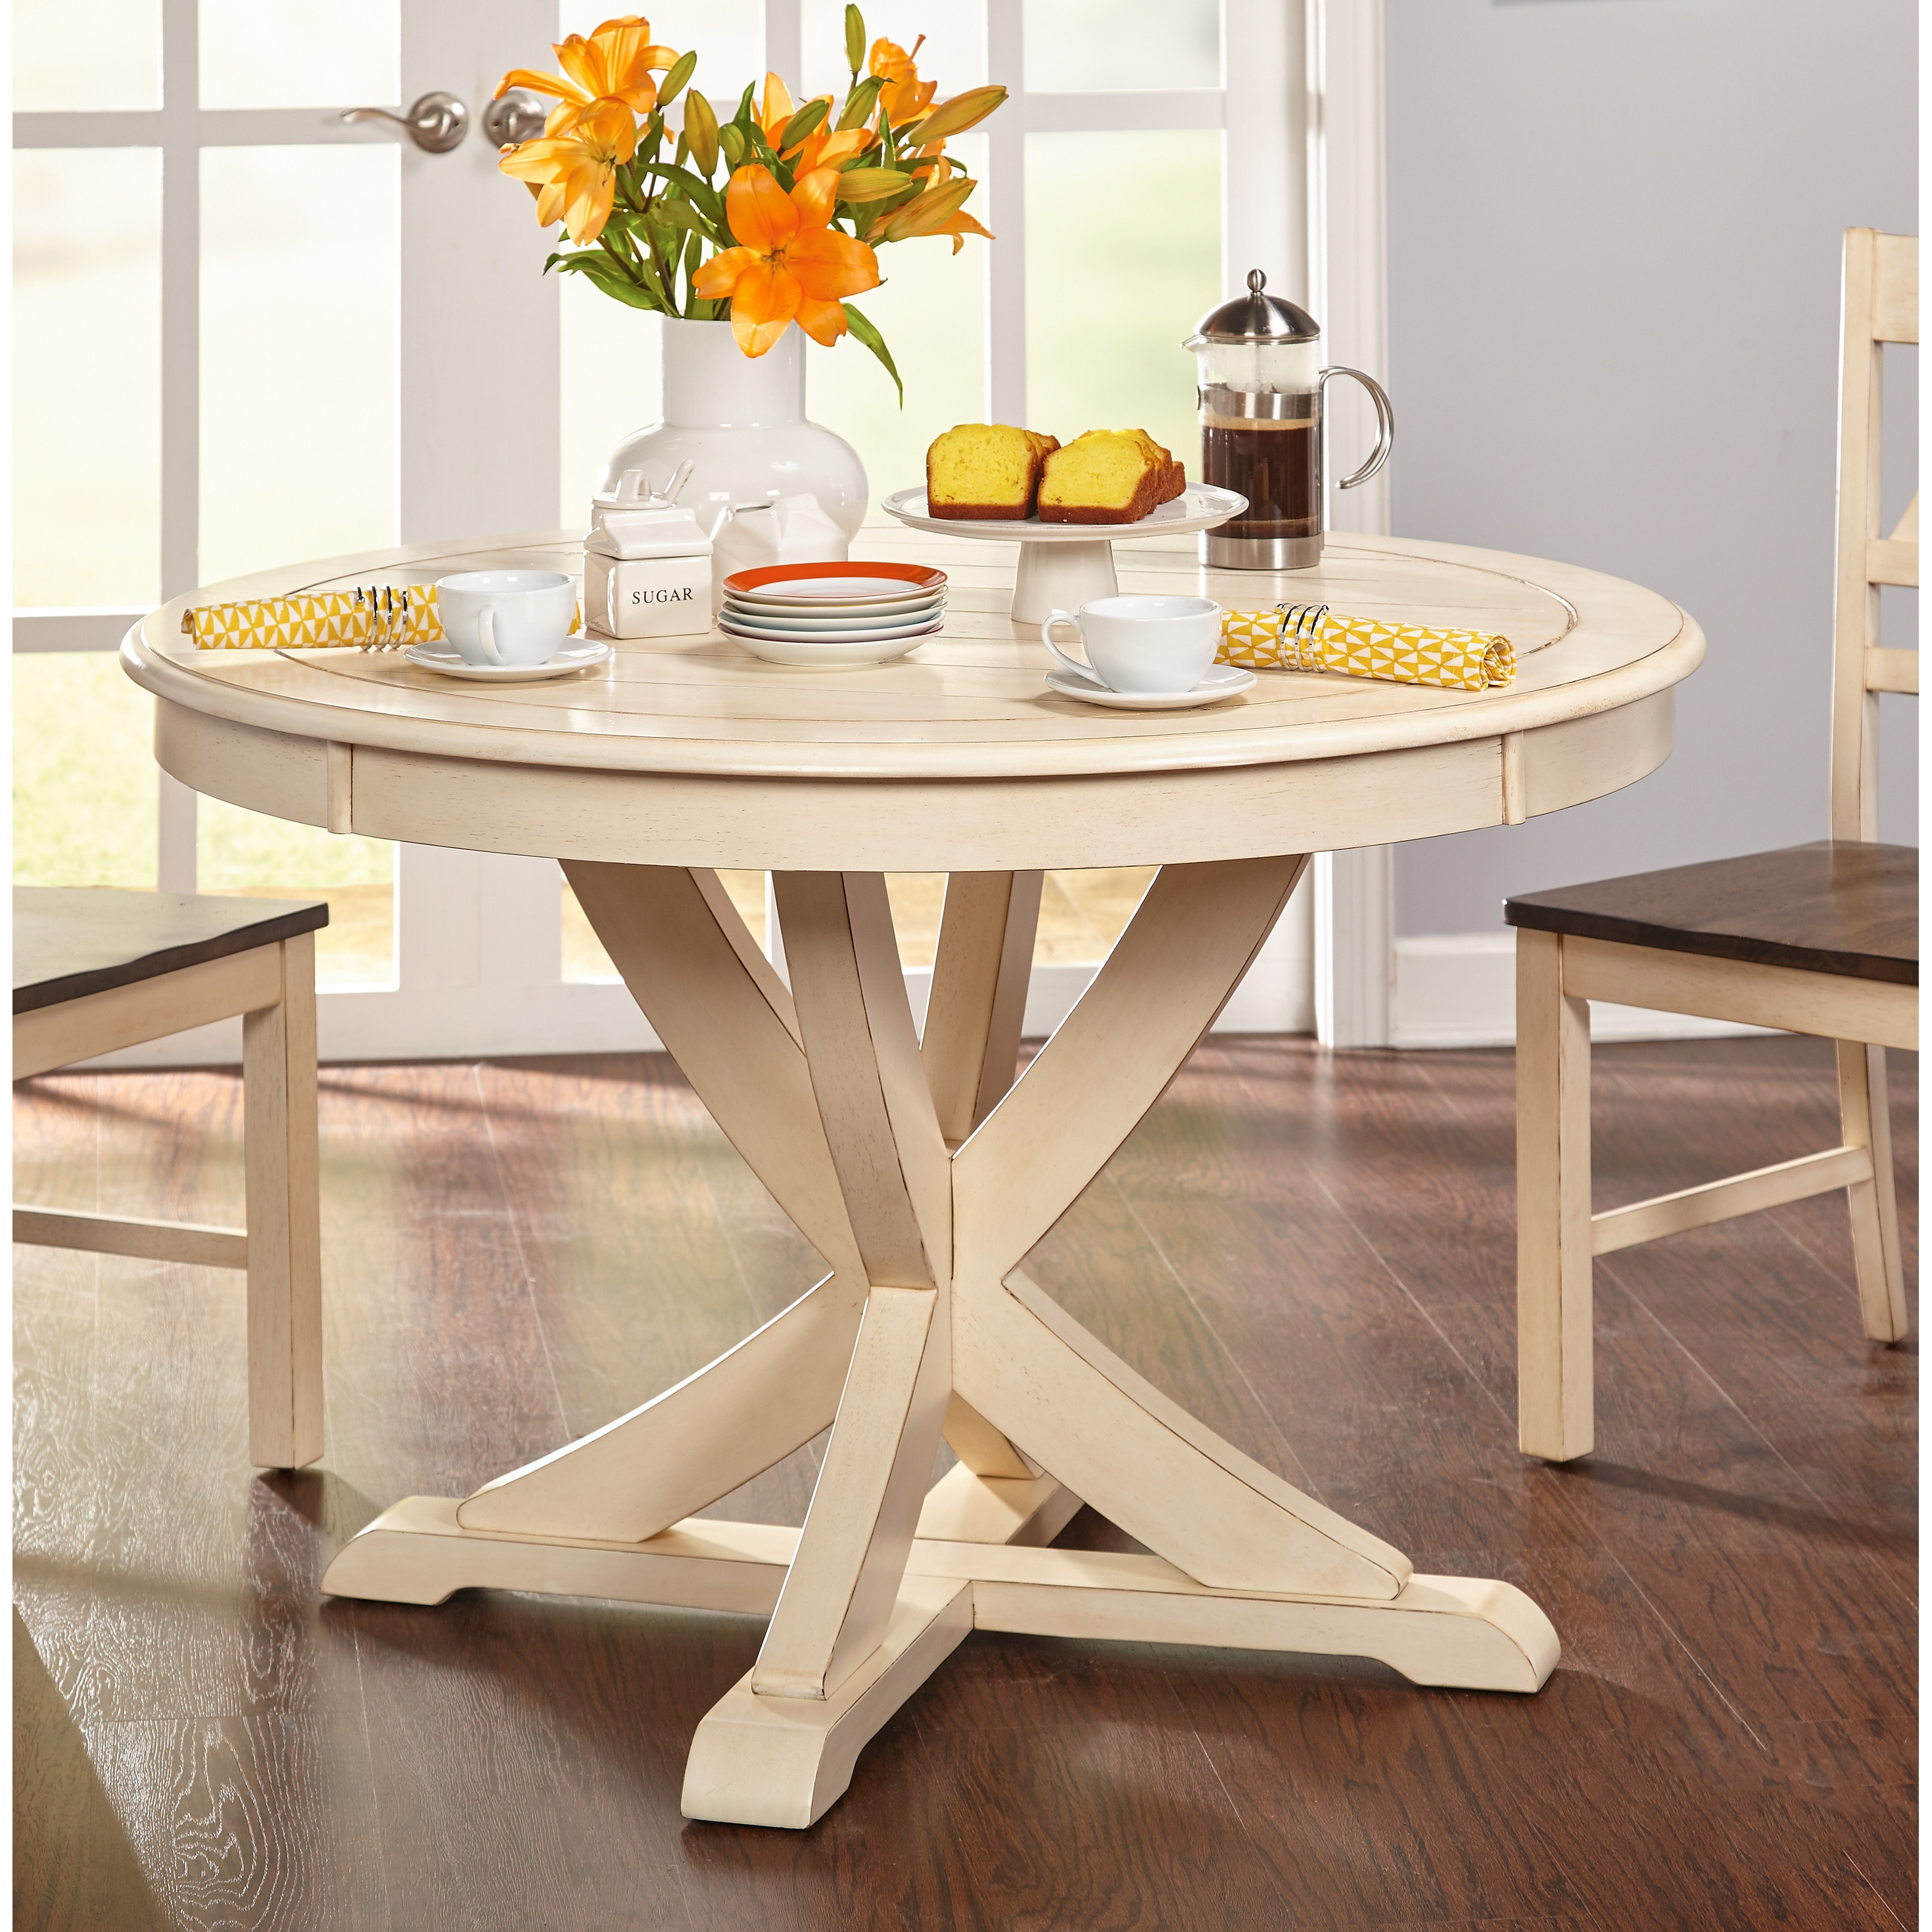 Simple Living Vintner Country Style Dining Set (3pc Vintn...